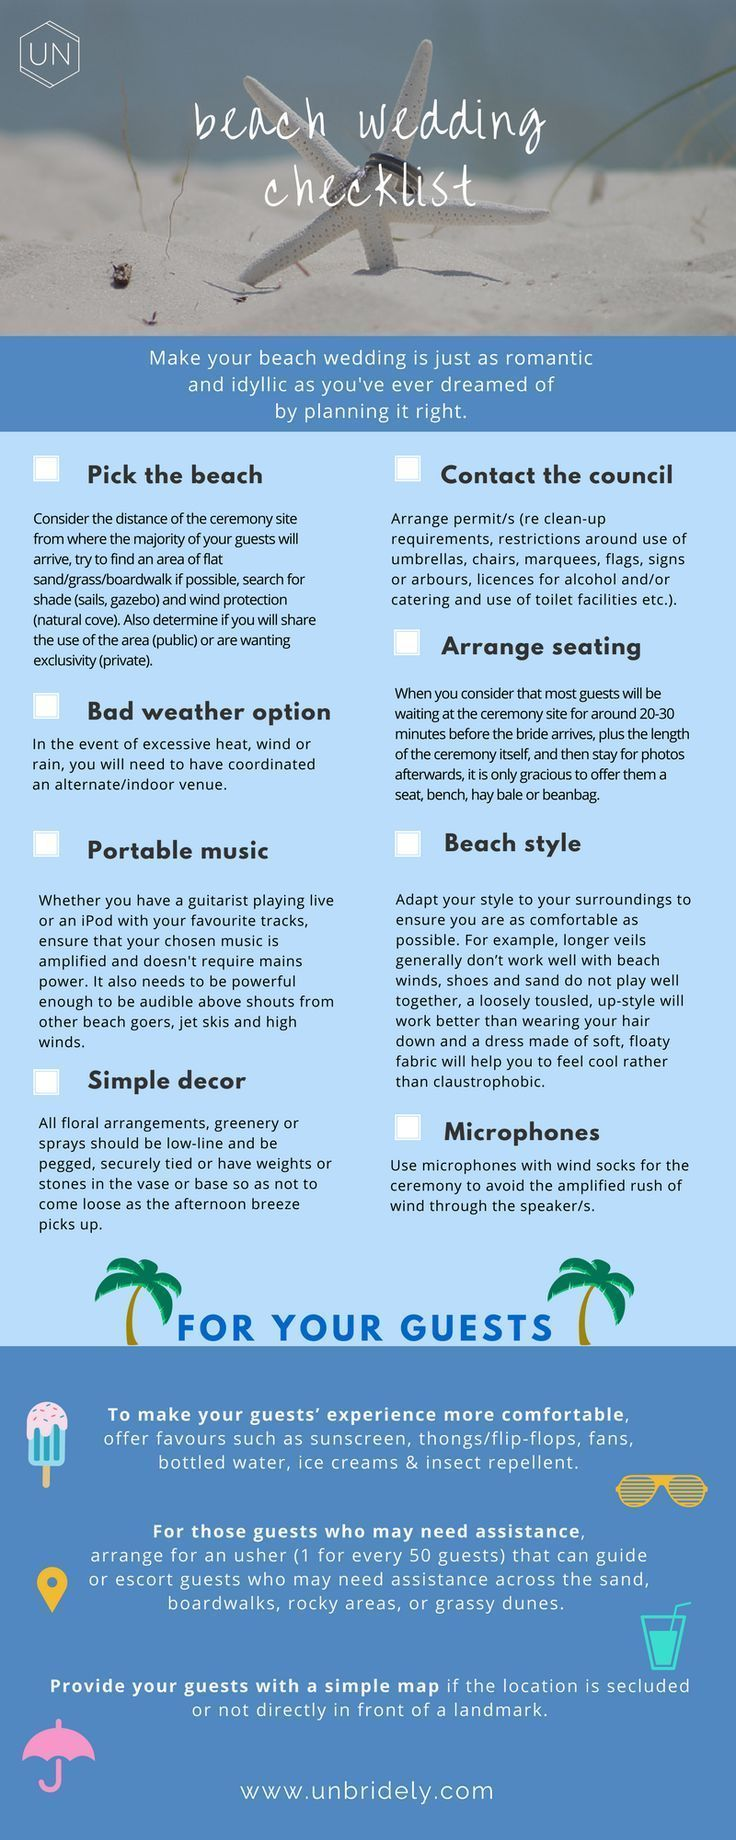 6 Things I Have Learned About Beach Weddings Unbridely Wedding Checklist Destination Wedding Checklist Wedding Decoration Checklist